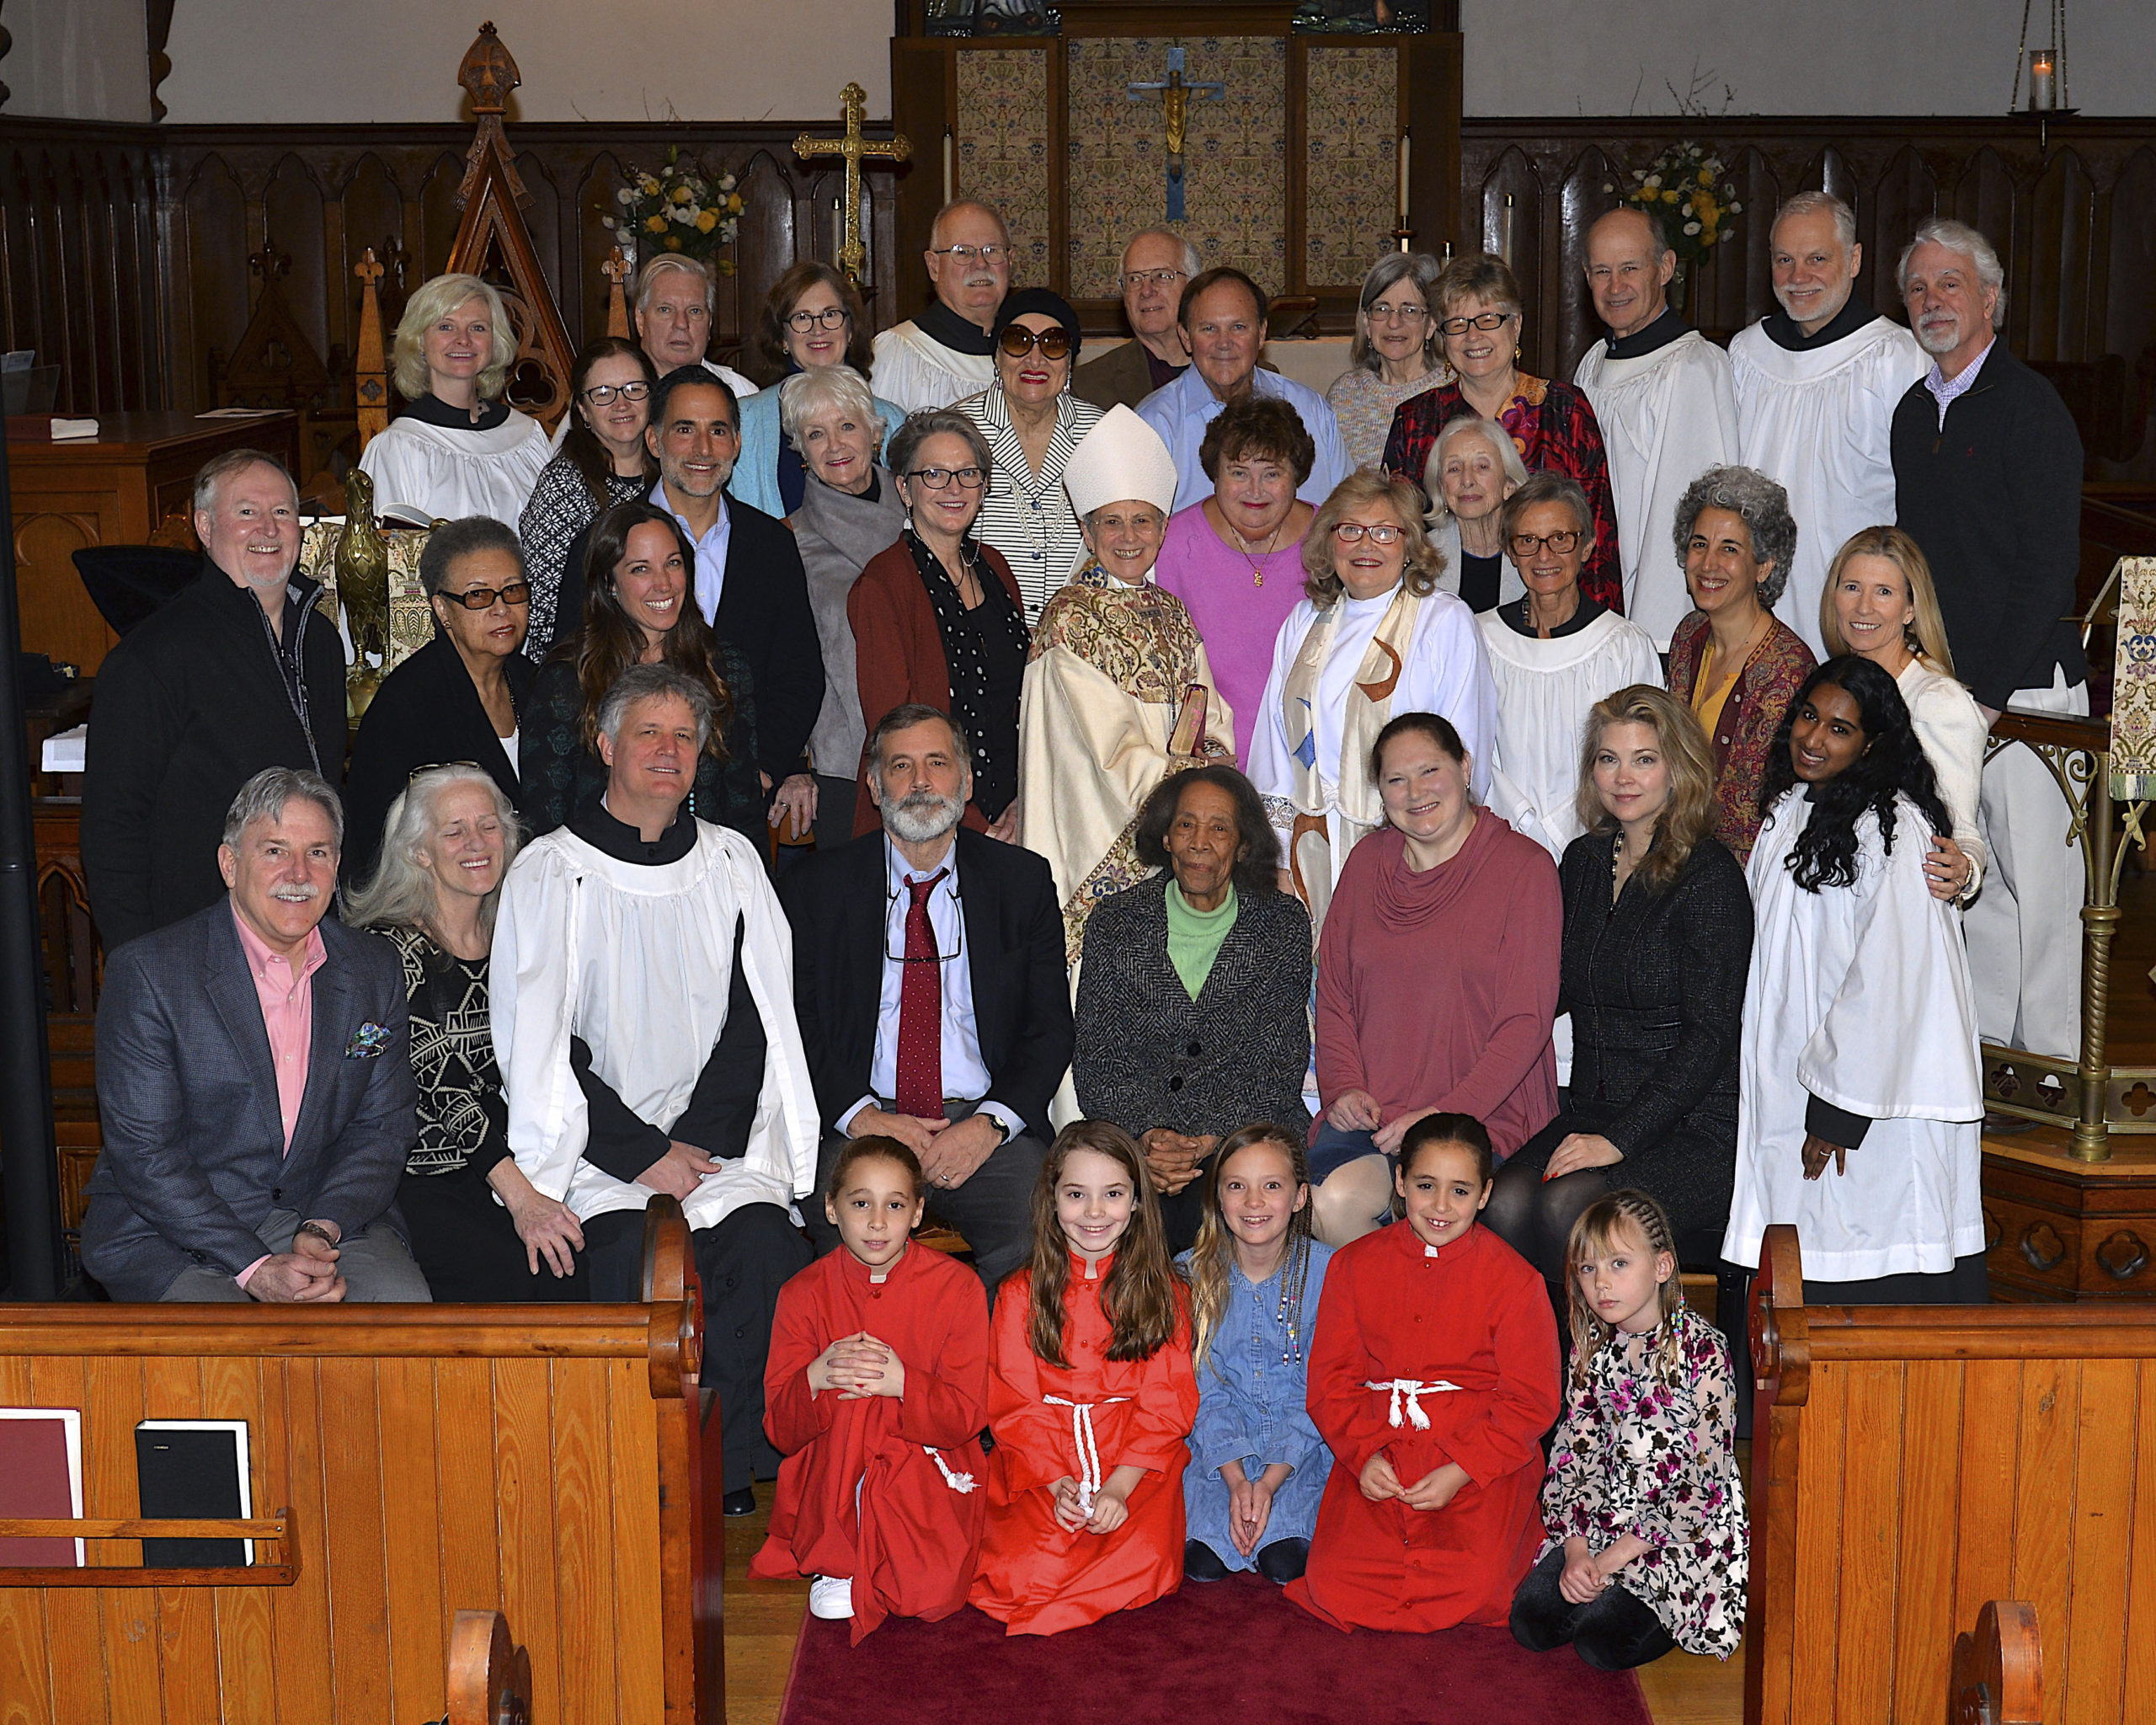 """On Sunday February 23rd, the congregation of Christ Episcopal Church at 5 Hampton St. welcomed The Rt Rev. Geralyn Wolf, Assisting Bishop of the Episcopal Diocese of Long Island. She is pictured with the attendees at Sunday's 10 am service. Following the service the Bishop met with the Church Vestry over lunch to discuss plan's for the Church's 175th anniversary celebration this spring and plans for the Church's feeding program, Community Cafe."""" KYRIL BROMLEY"""